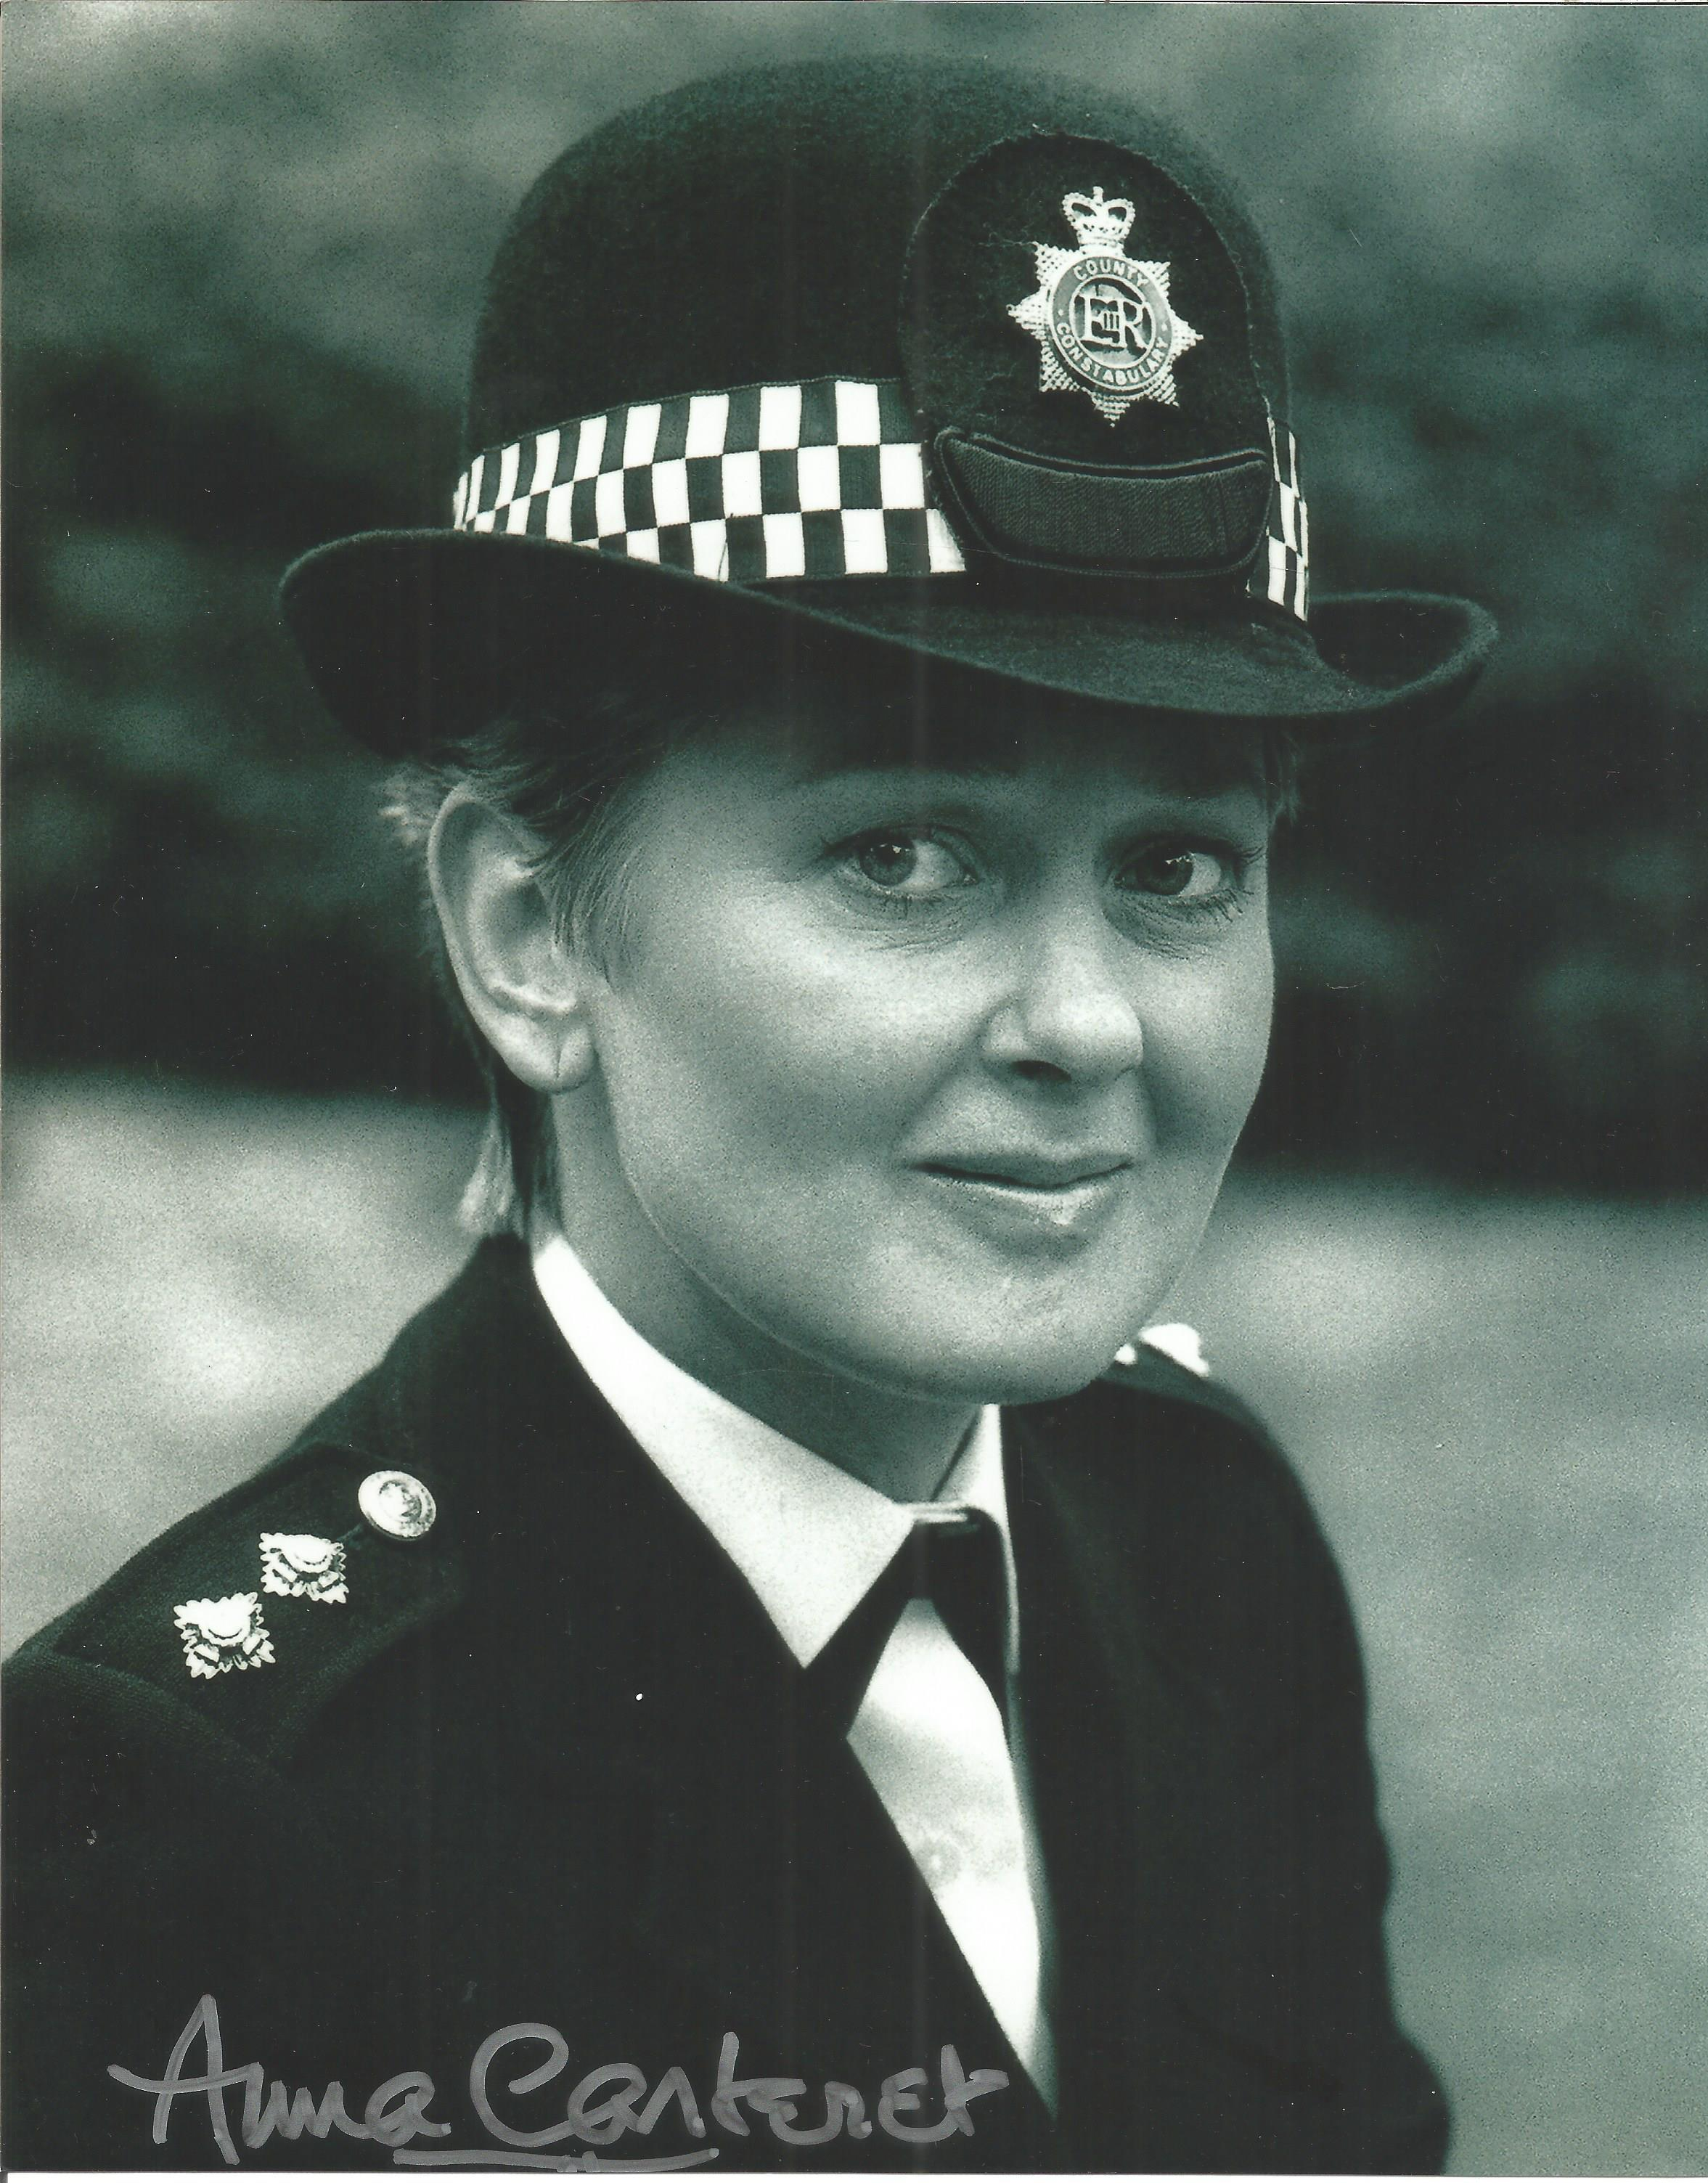 Anna Carteret signed 10x8 black and white image. Image is taken from her role as Juliet Bravo.